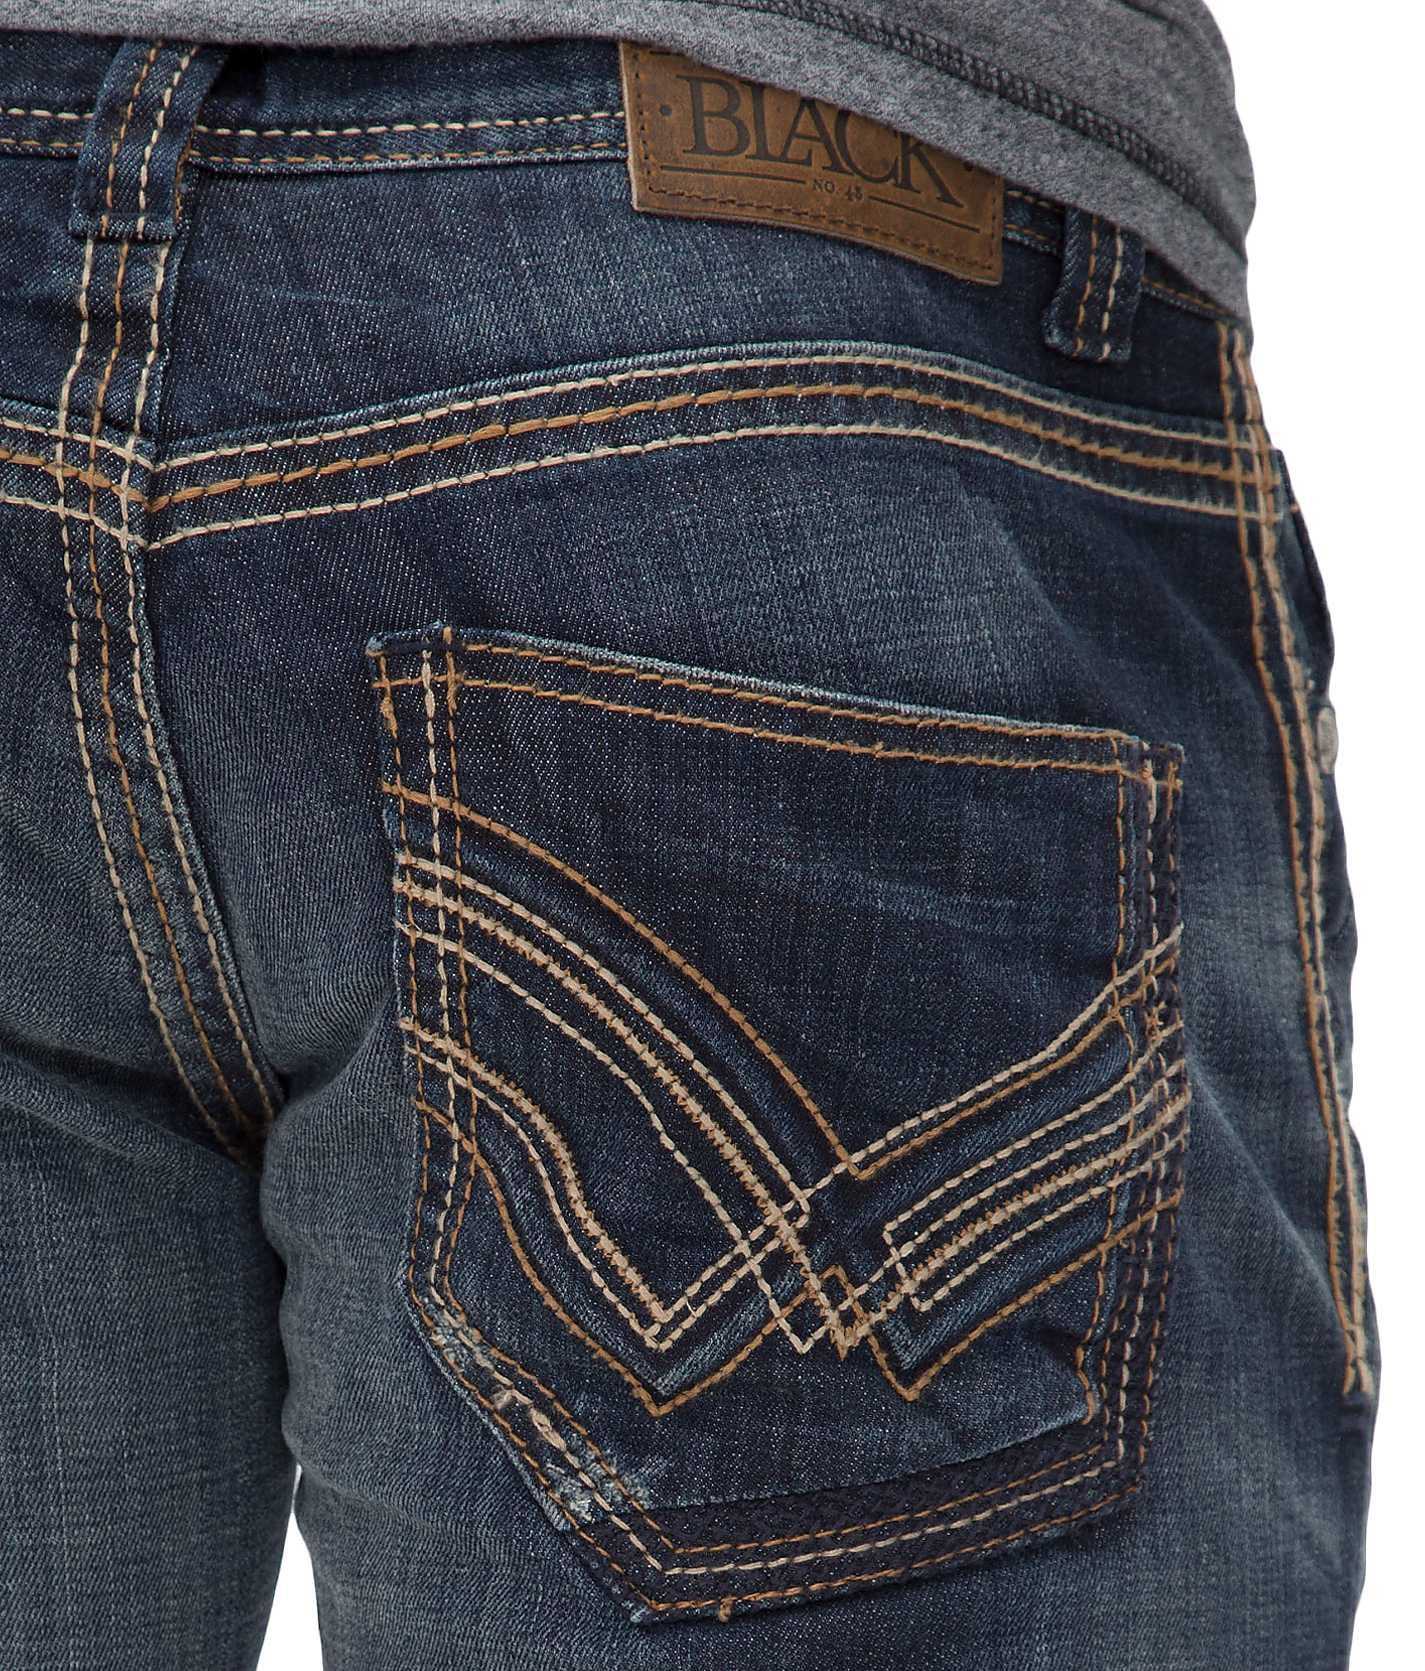 Buckle Black Seven Jean - Men's Jeans | Buckle | Denim | Pinterest ...